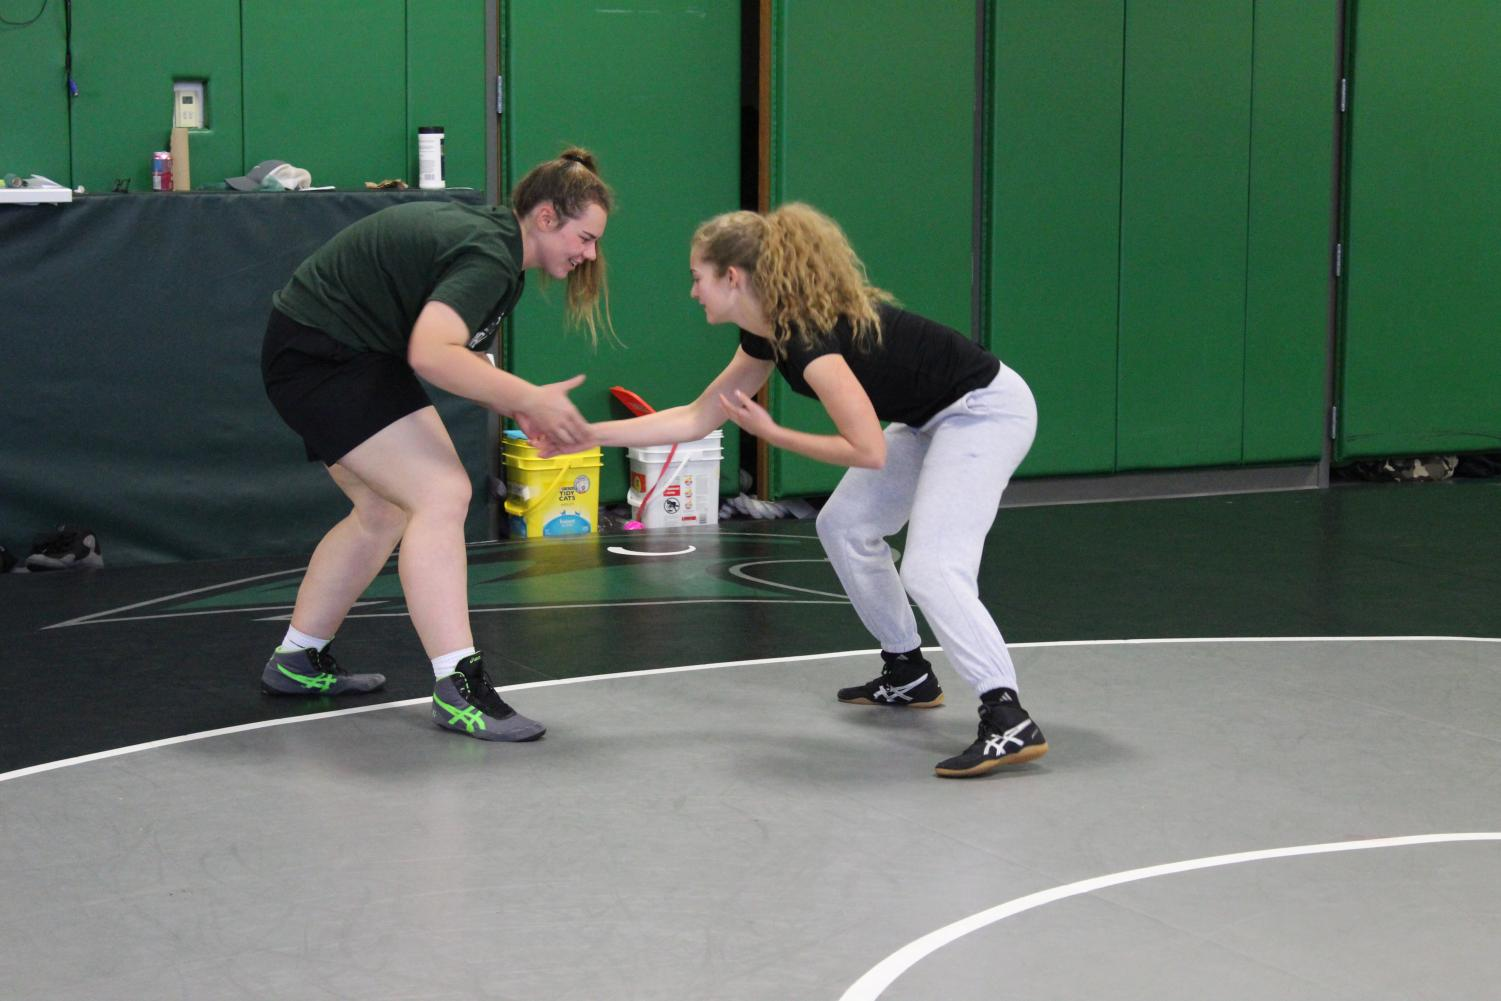 """Sophomore Madison Schmude and Remi Asta, sophomore, partner up before practice to start warming up on November 8th. They start by hand wrestling and working other wrestling moves on the mat. The season started on October 29th. """"What happens in the wrestling stays in the wrestling room,"""" says Schmude."""